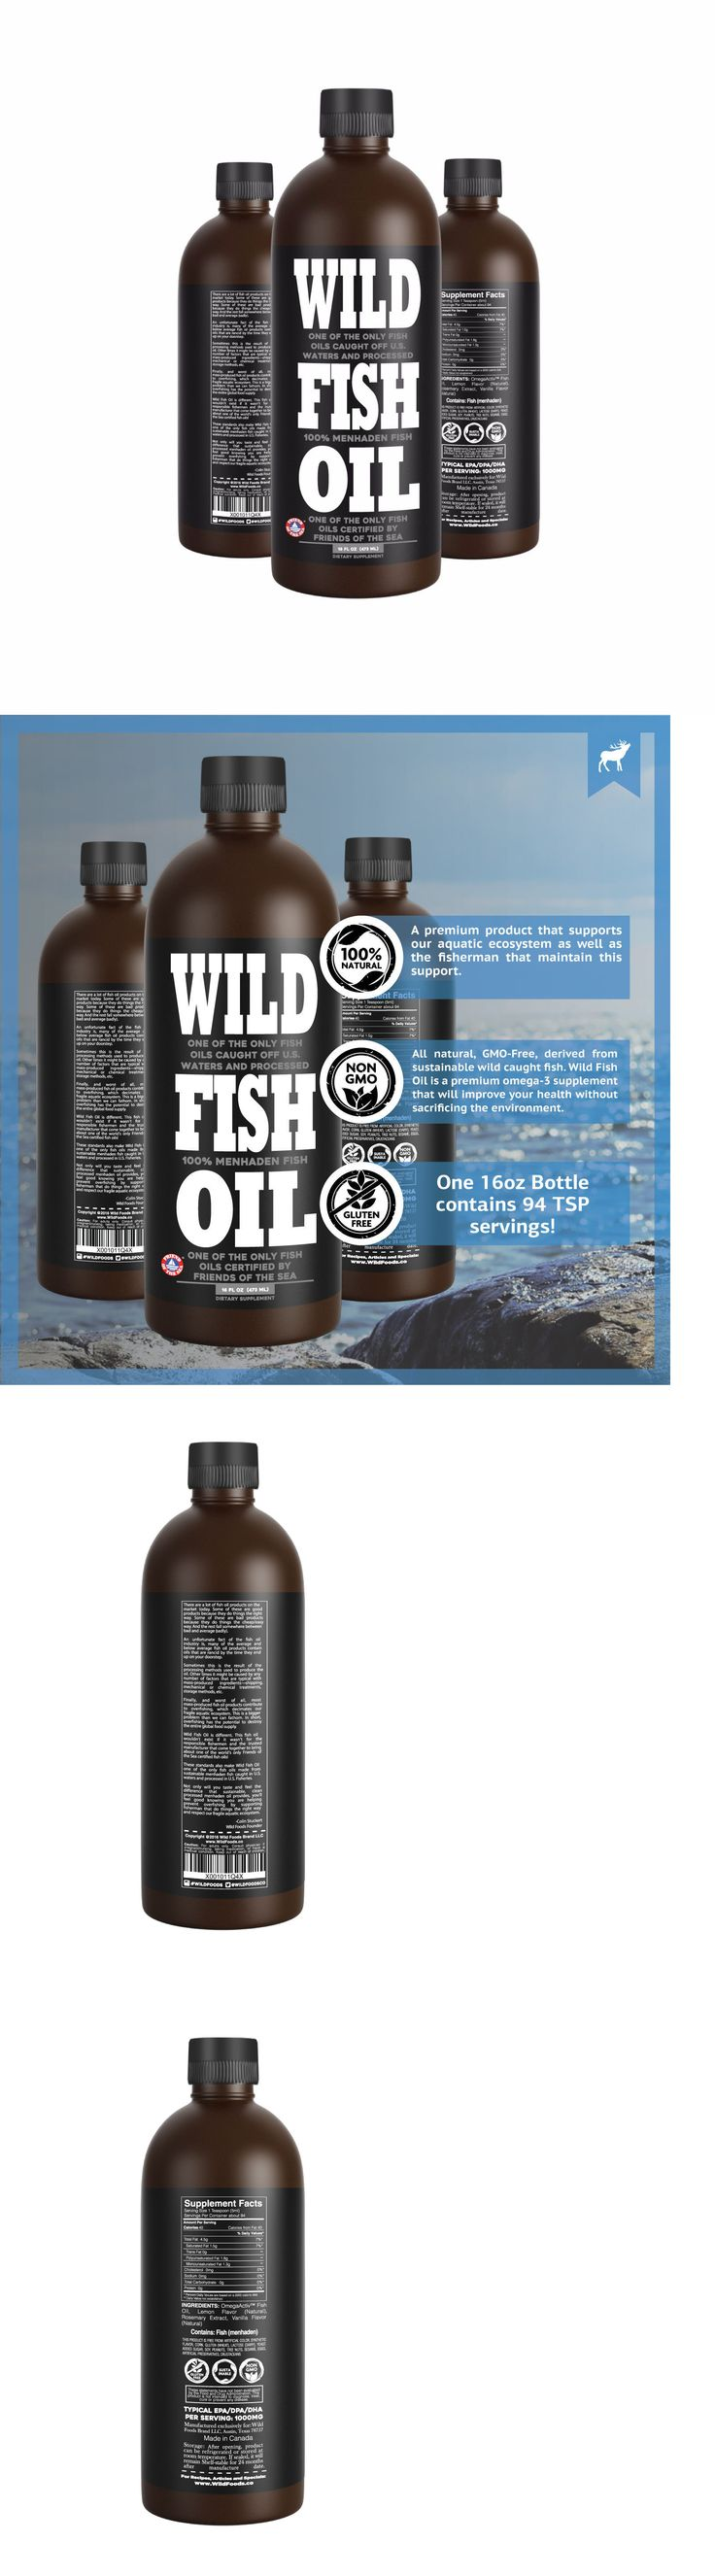 Dietary Supplements: Wild Fish Oil 16Oz Omega-3 Epa - Dha - Dpa Sustainably Harvested - Fos Certified -> BUY IT NOW ONLY: $67.95 on eBay!